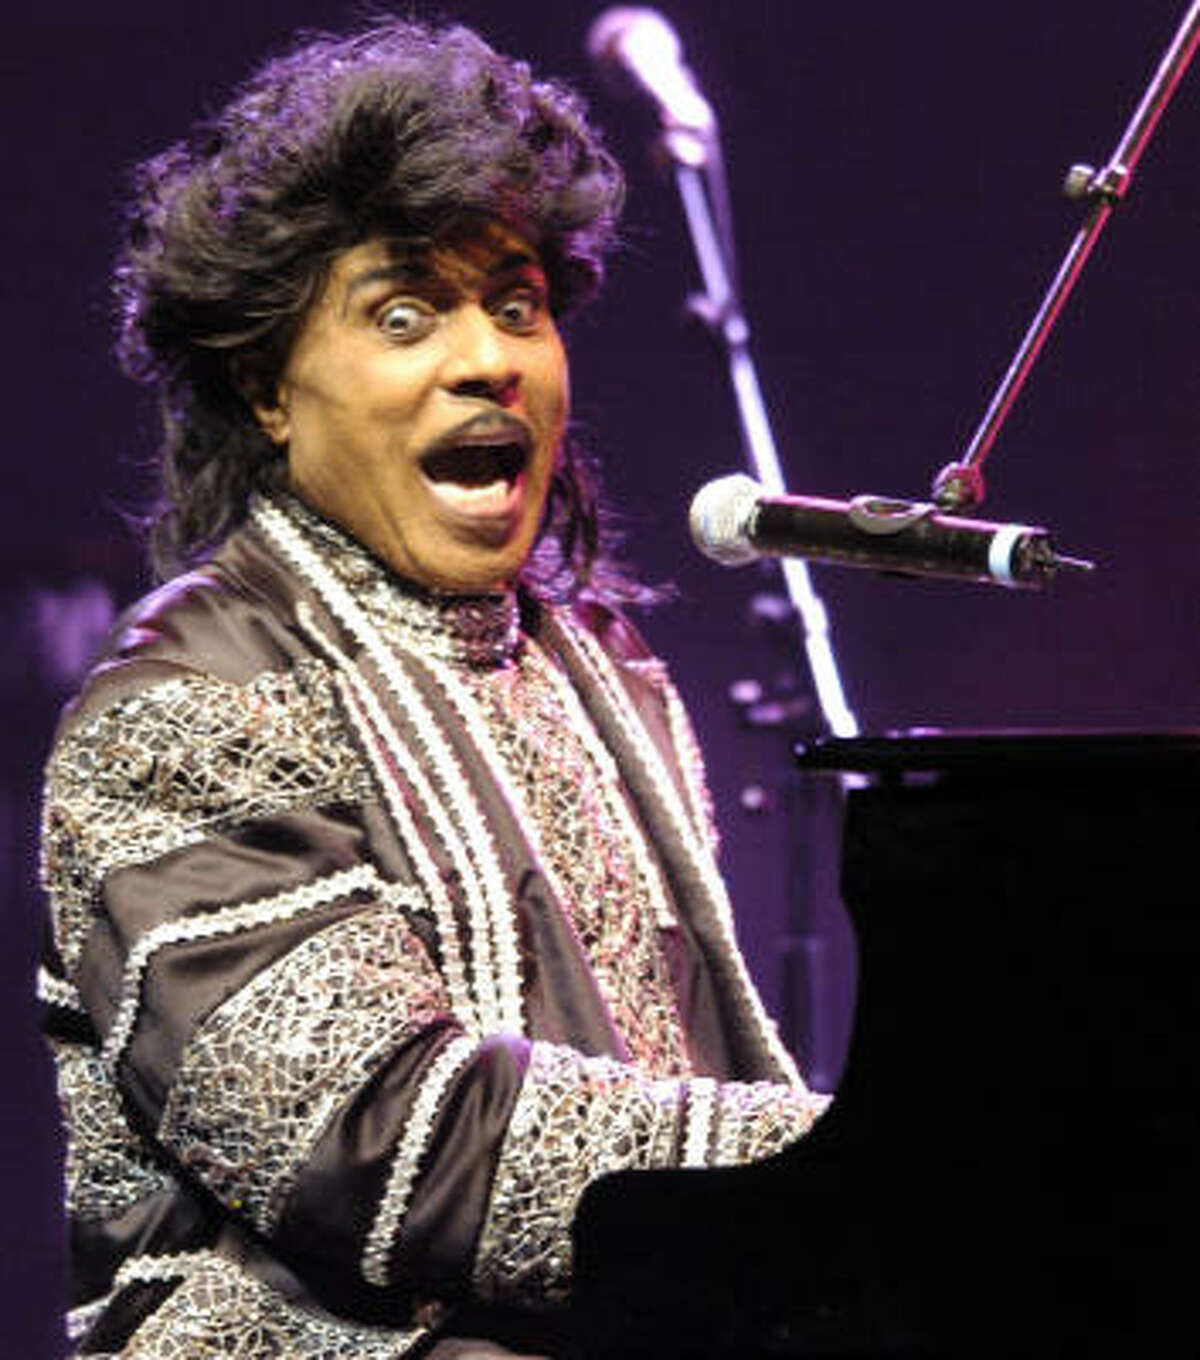 ROCK 'N' ROLL FOR DONATIONS: Little Richard will be part of a '50/'60s/pop/doo-wop revival special on pbs.